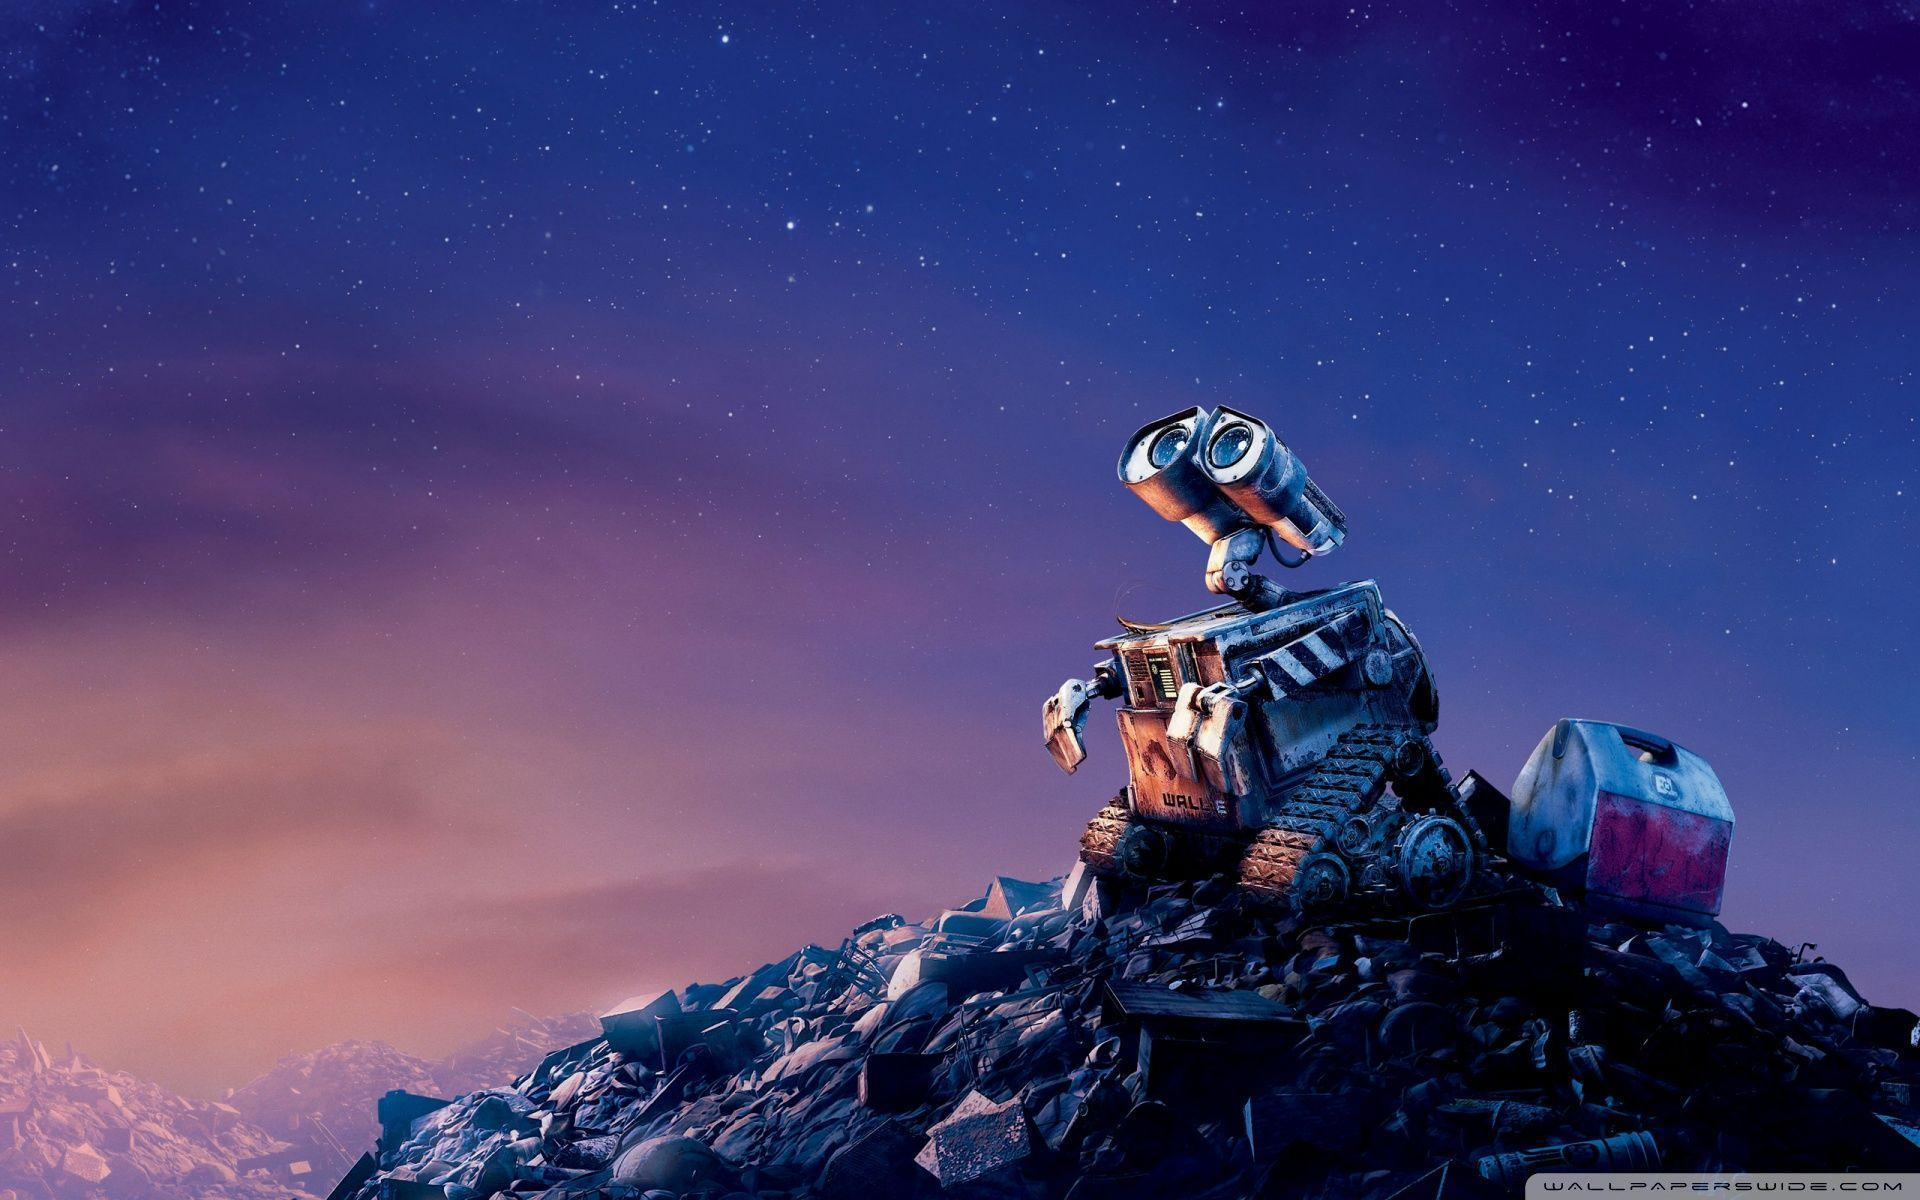 Wall E Wallpapers Top Free Wall E Backgrounds Wallpaperaccess